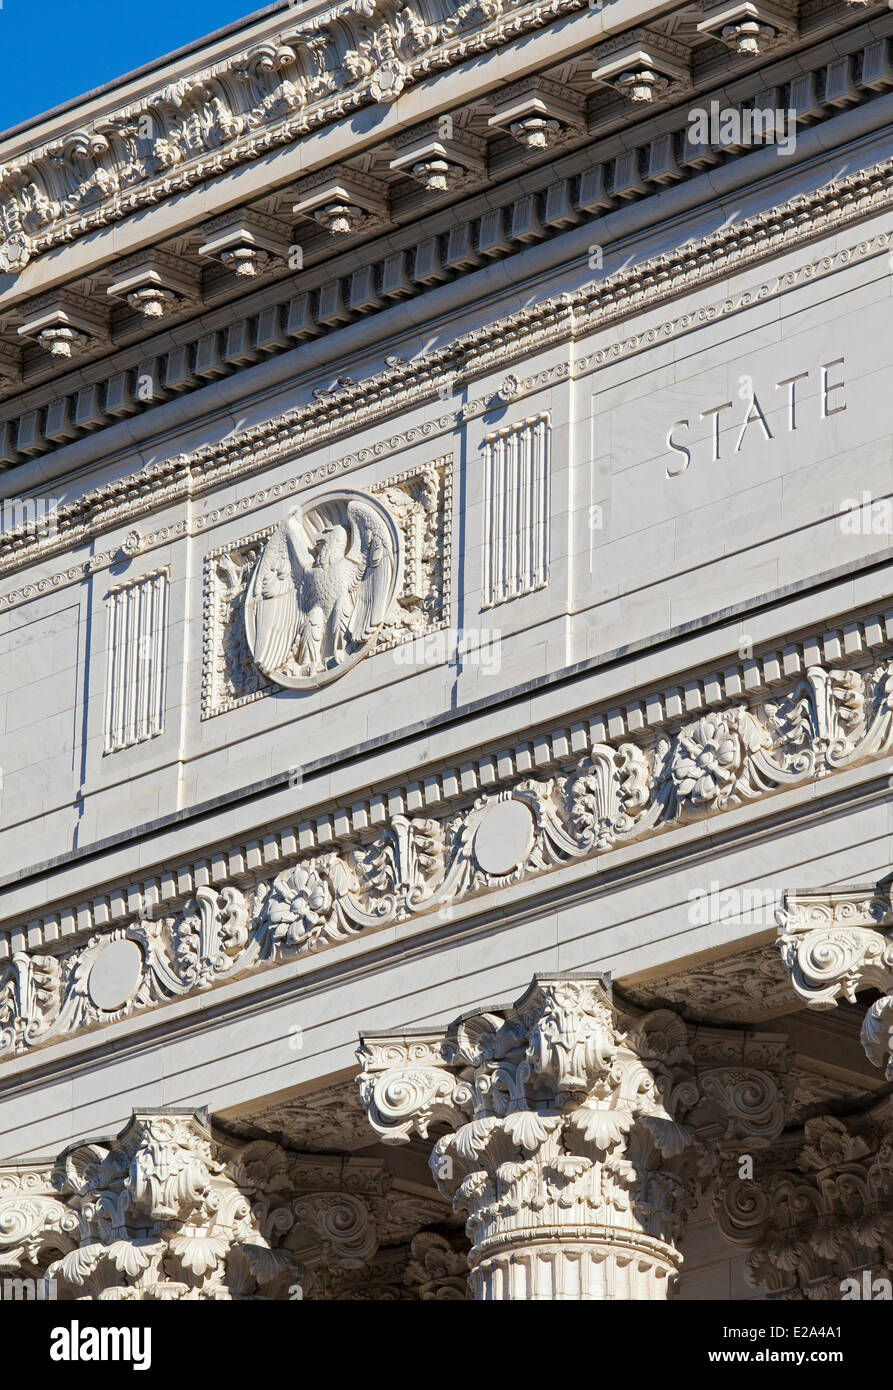 United States, New York state, Albany, the state capital, the pediment of the New York State Department of Education - Stock Image